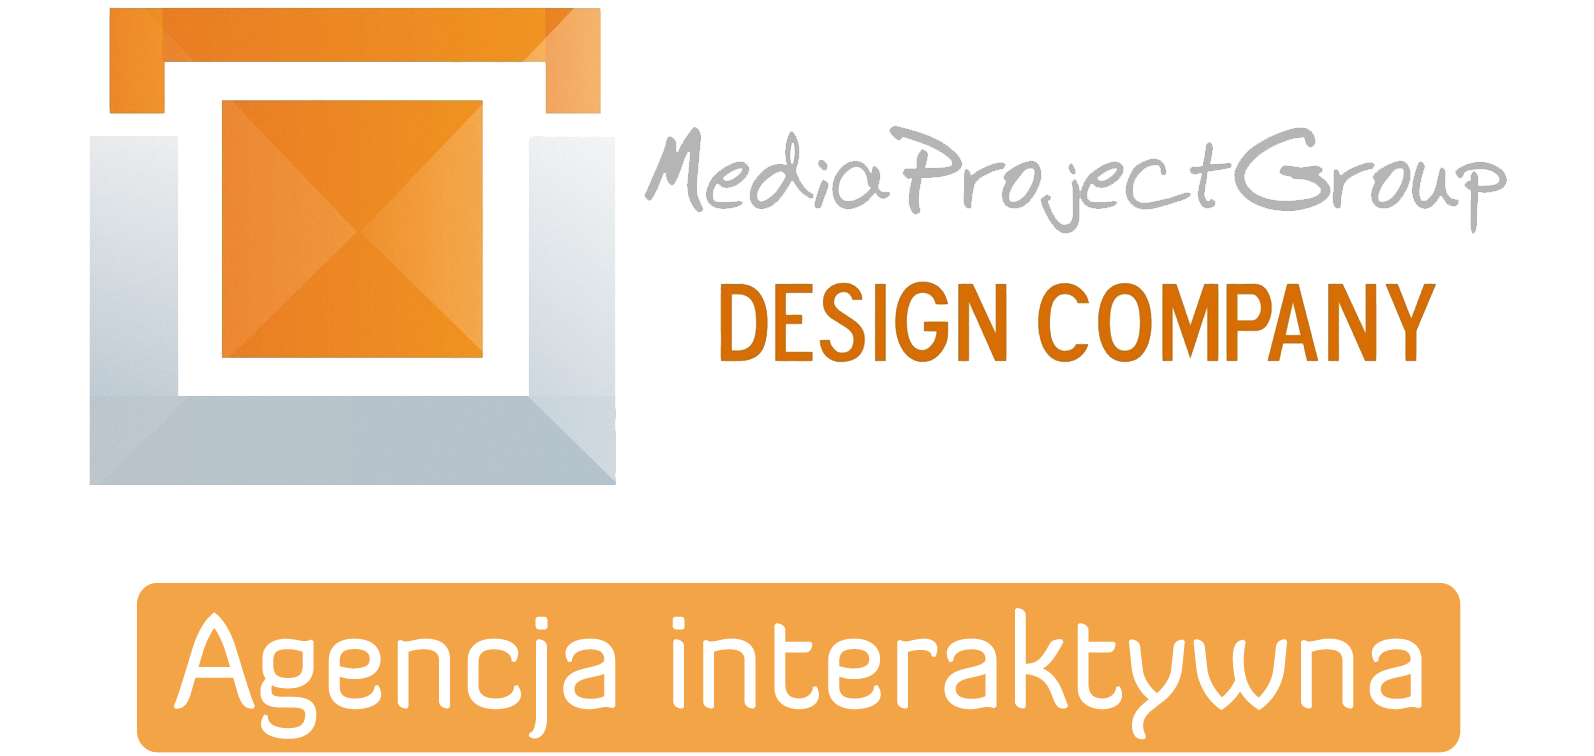 www.mediaprojectgroup.com